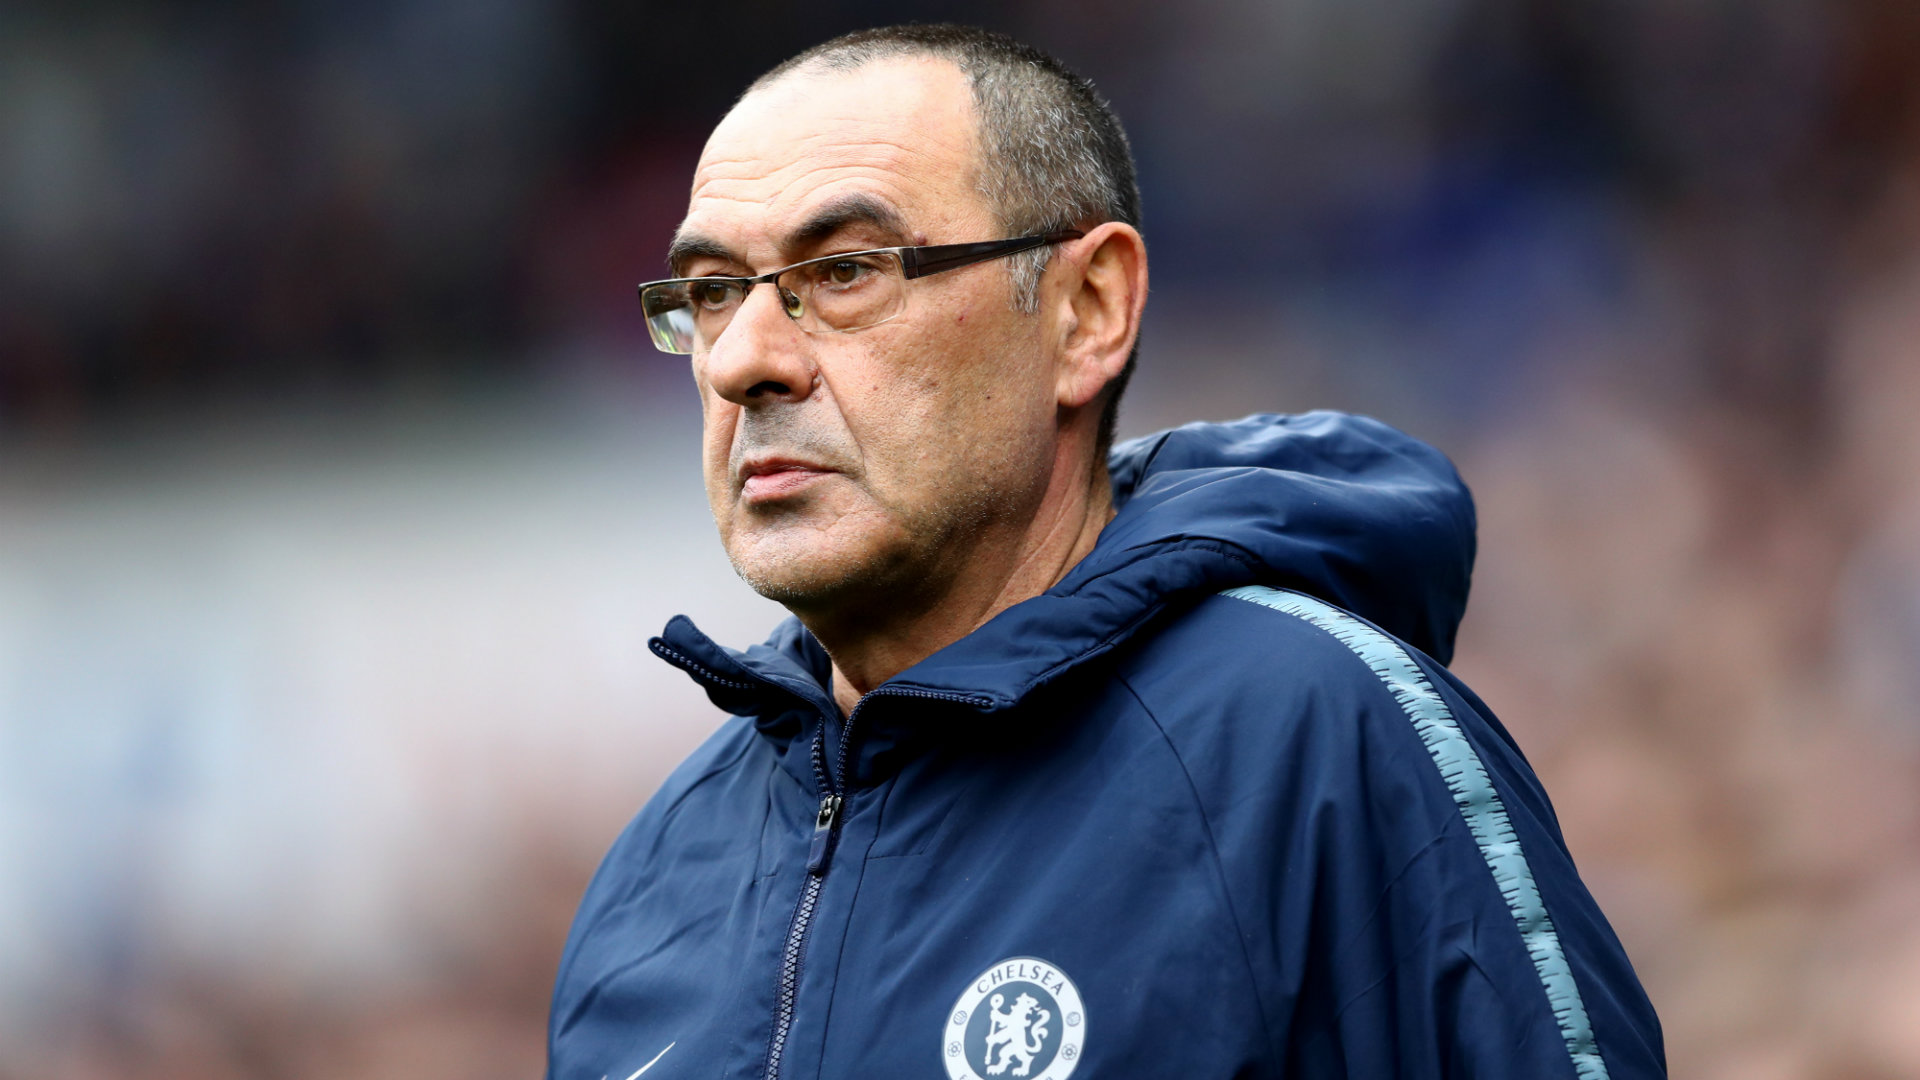 Under-fire Sarri issues plea to Chelsea fans